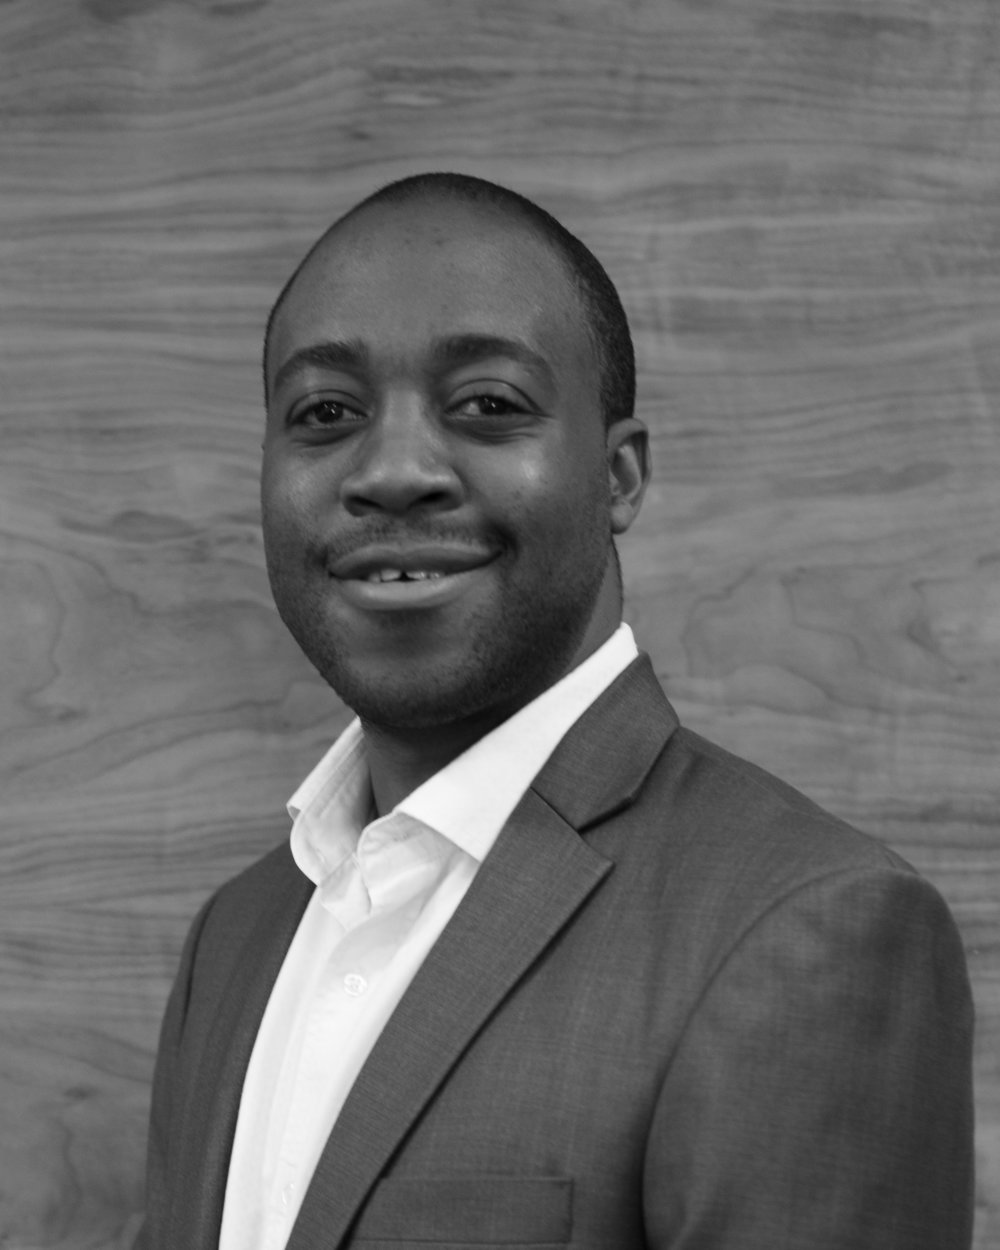 Walter Madzonga   Walter is a qualified engineer and currently the Group Executive of Digital at Independent Media.Walter graduated from the University of Cape Town in 2007, in Electrical specialising in Telecommunications.       Read more ...